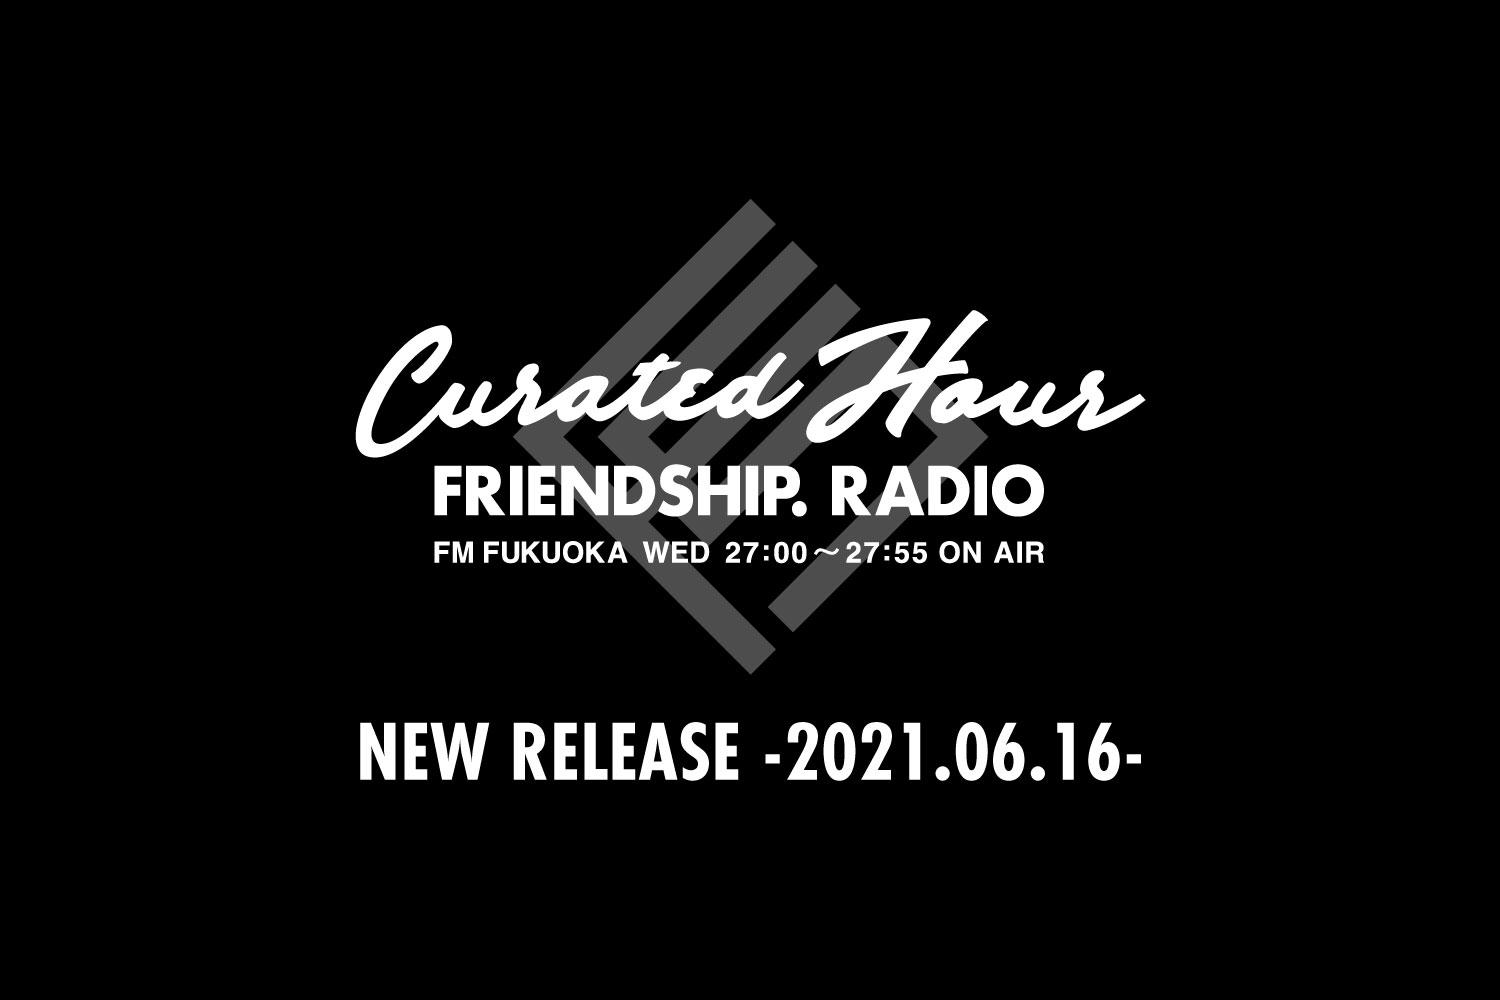 FRIENDSHIP.の最新楽曲を紹介!Pictured Resort・YESEYSESY・butohesほか全13作品 -2021.06.16-